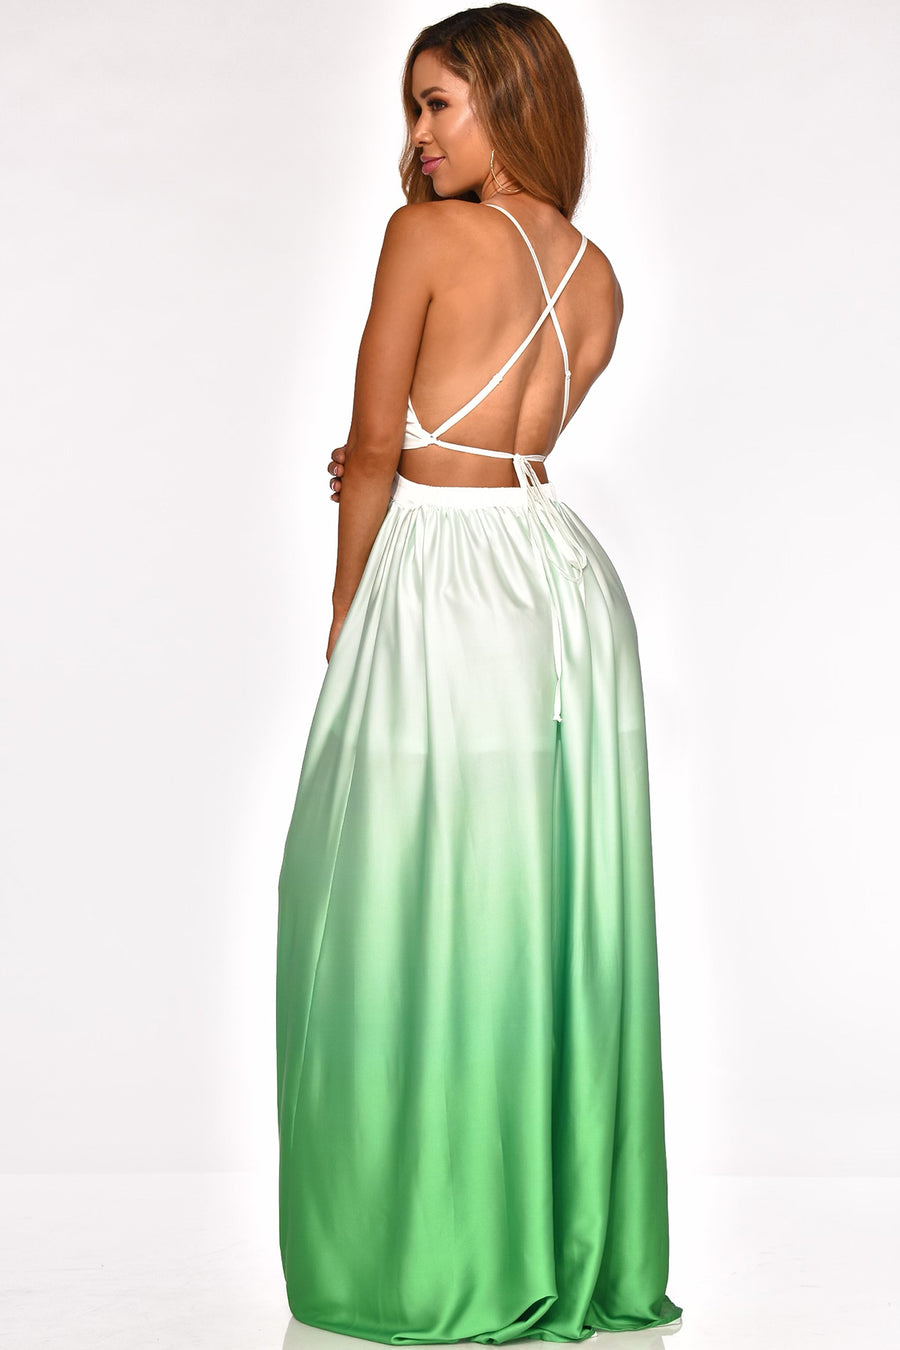 LEAVE YOU MESMERIZED MAXI DRESS